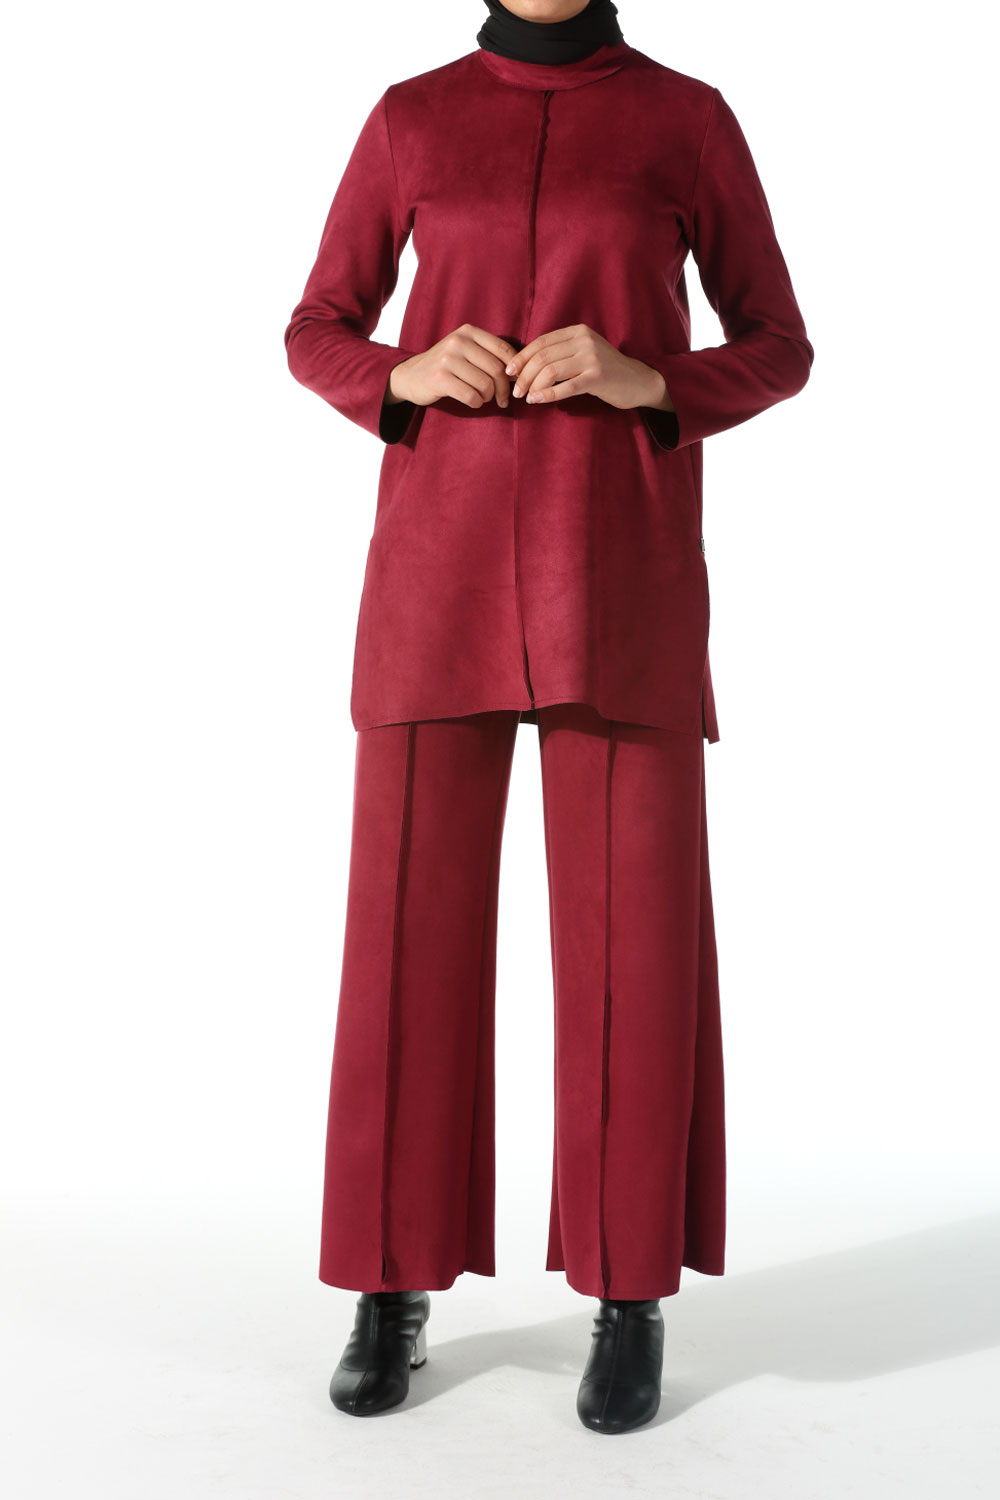 SUEDE HIJAB SUIT WITH PANTS